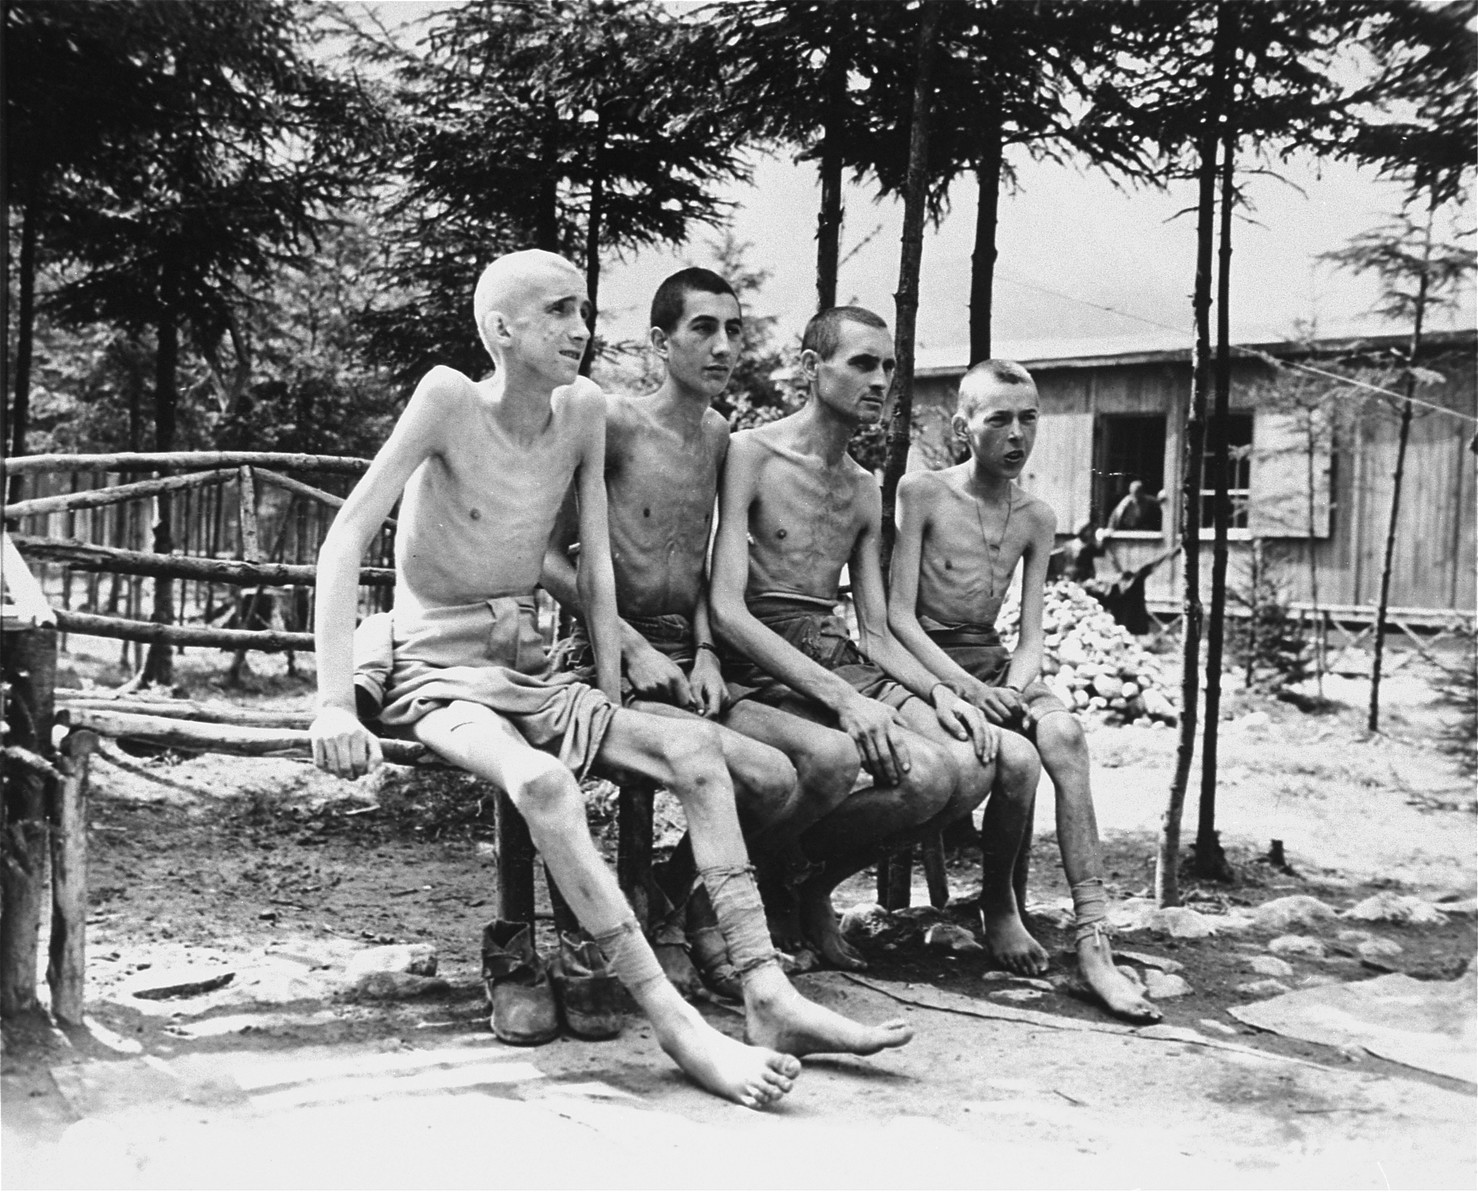 "Four emaciated survivors sit outside in the newly liberated Ebensee concentration camp.  The original Signal Corps caption reads,  ""EBENSEE CONCENTRATION CAMP. In the Austrian Alps at Ebensee, Austria, units of the 80th Div, of the Third U...  found one of the largest and most brutal German concentration camps shortly bef...  of the war in Europe.  The camp contained about 60,000 prisoners of 25 different ... all in various stages of starvation.   The camp reputedly was used for scientifi... on the prisoners, who were used as live guinea pigs.  Conditions for the living ... bably brutal and filthy.  The men were forced to sleep four to a narrow bunk in ... barracs.  They died at the rate of 2000 a week, and their bodies were disposed o... ready for the crematory.  The Germans had fled before they had time to burn them.  ... living are being given care and nourishing food.  When they are strong enough to ... they will be returned to their homes. These photos were taken May 7 and 8, 1945.  PNA                                                            EA 66316 THIS PHOTO SHOWS: These living skeletons are young boys.   U.S. Signal Corps Photo ETO-HQ-45-46147 SERVICED BY LONDON OWI (INNER FULL) CERTIFIED AS PASSED BY SHAEF CENSOR."